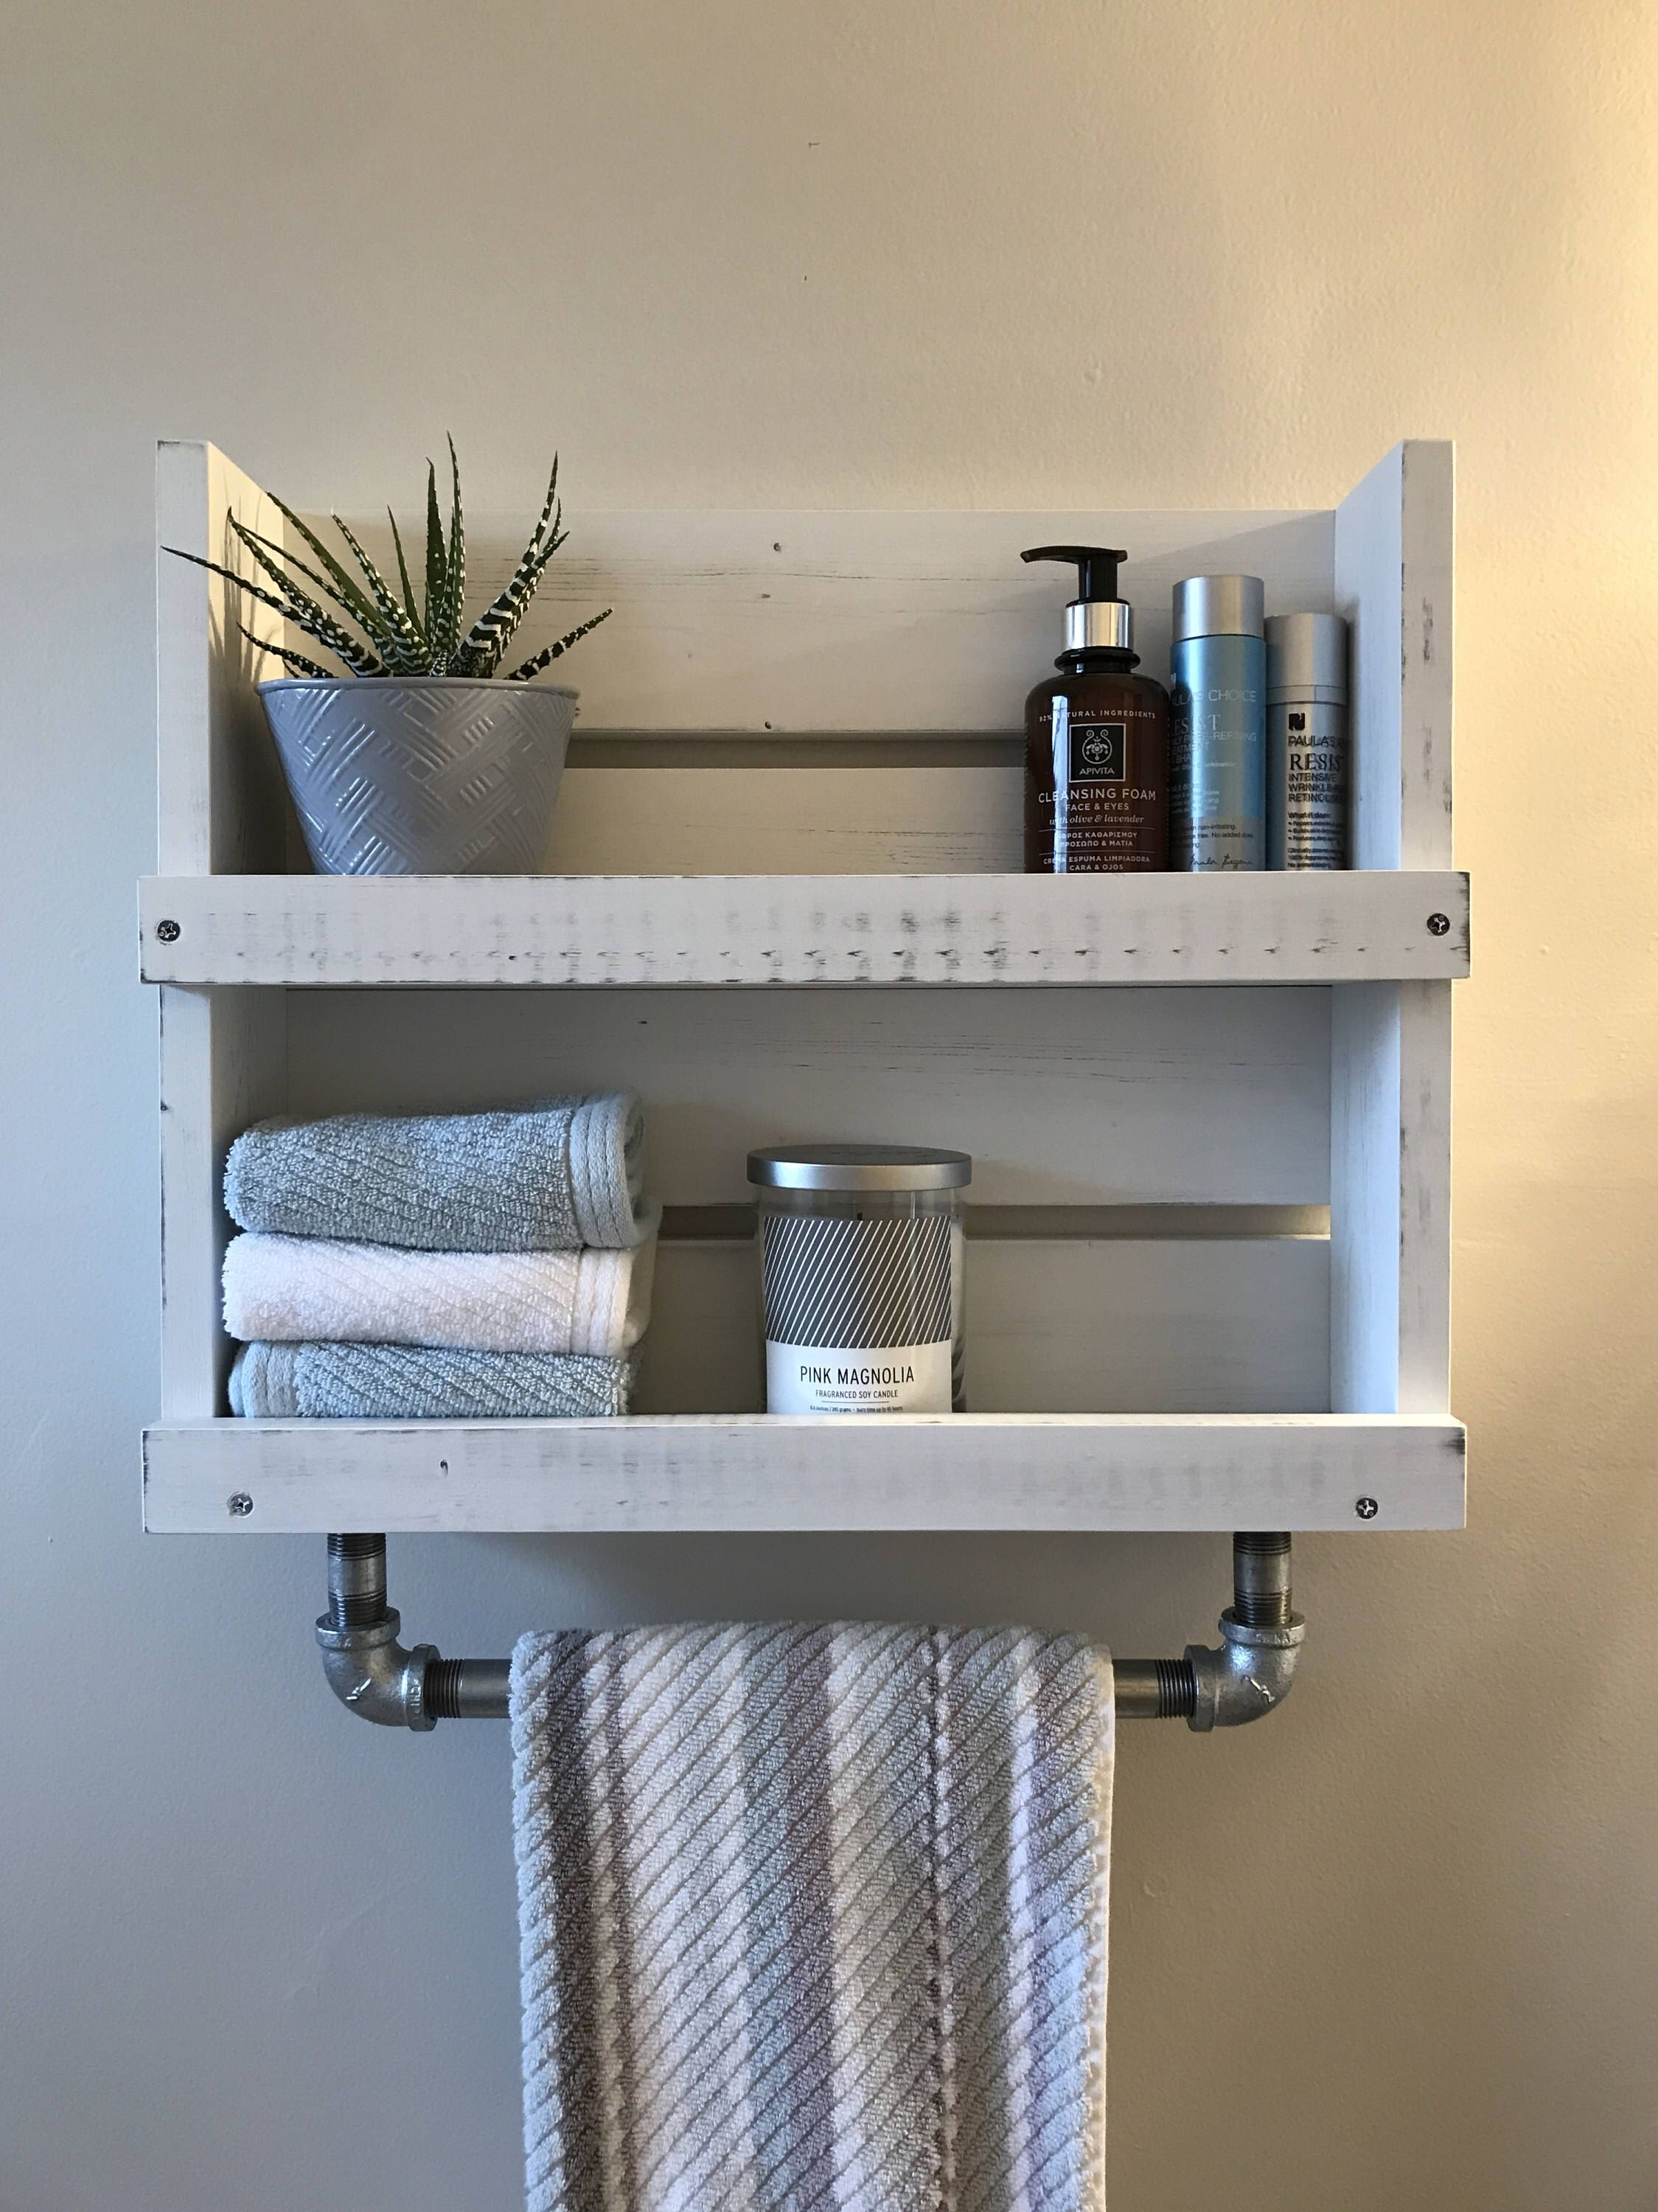 ... #etsy Shop: Bathroom Shelf With Towel Bar, White Distressed Wood Shelf  With Galvanized Pipe Towel Bar, Wall Mounted Bathroom Storage, Shelf,  Industrial